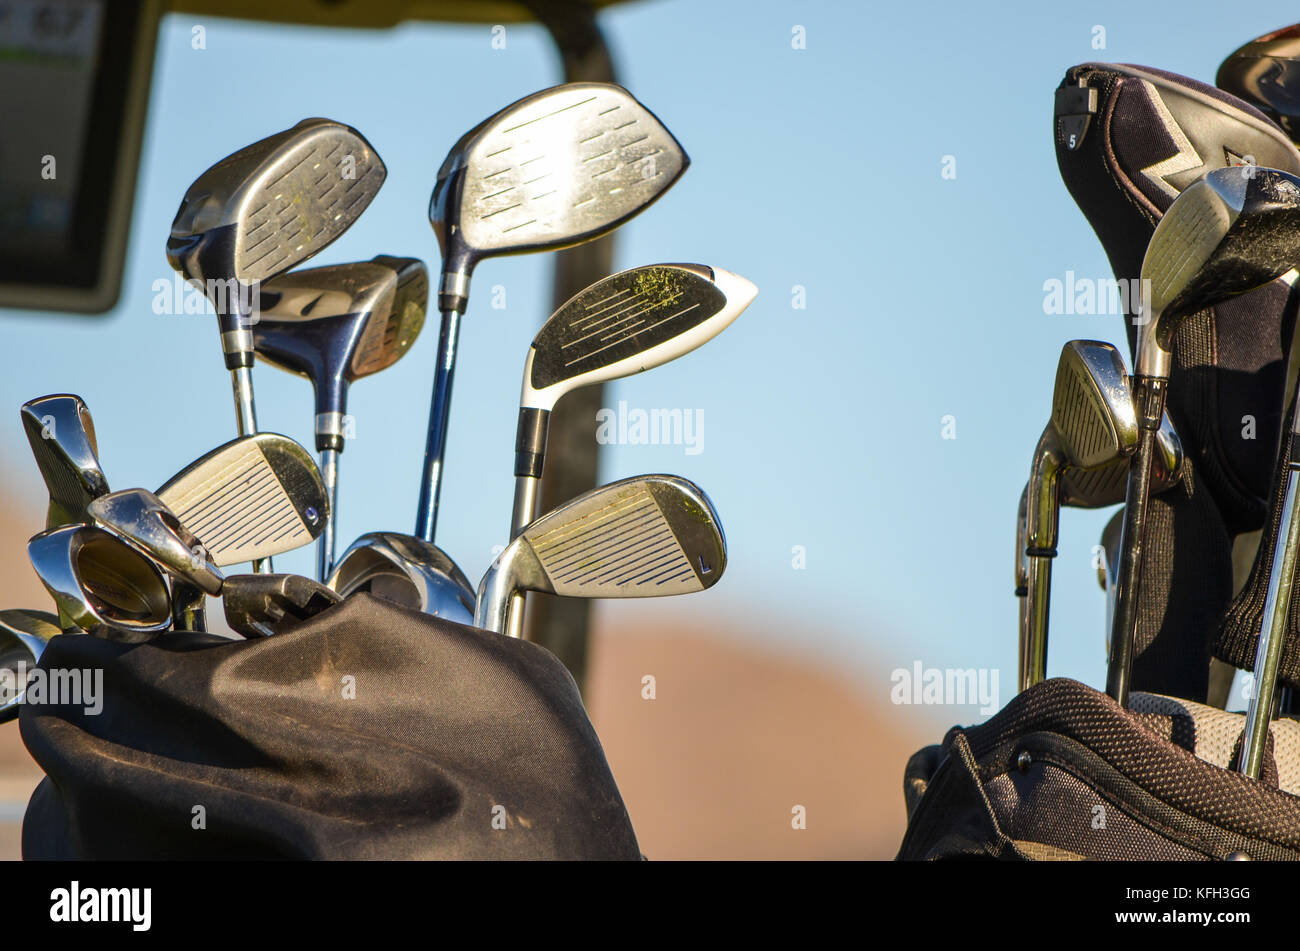 two golf bags with clubs on back of golf cart - Stock Image